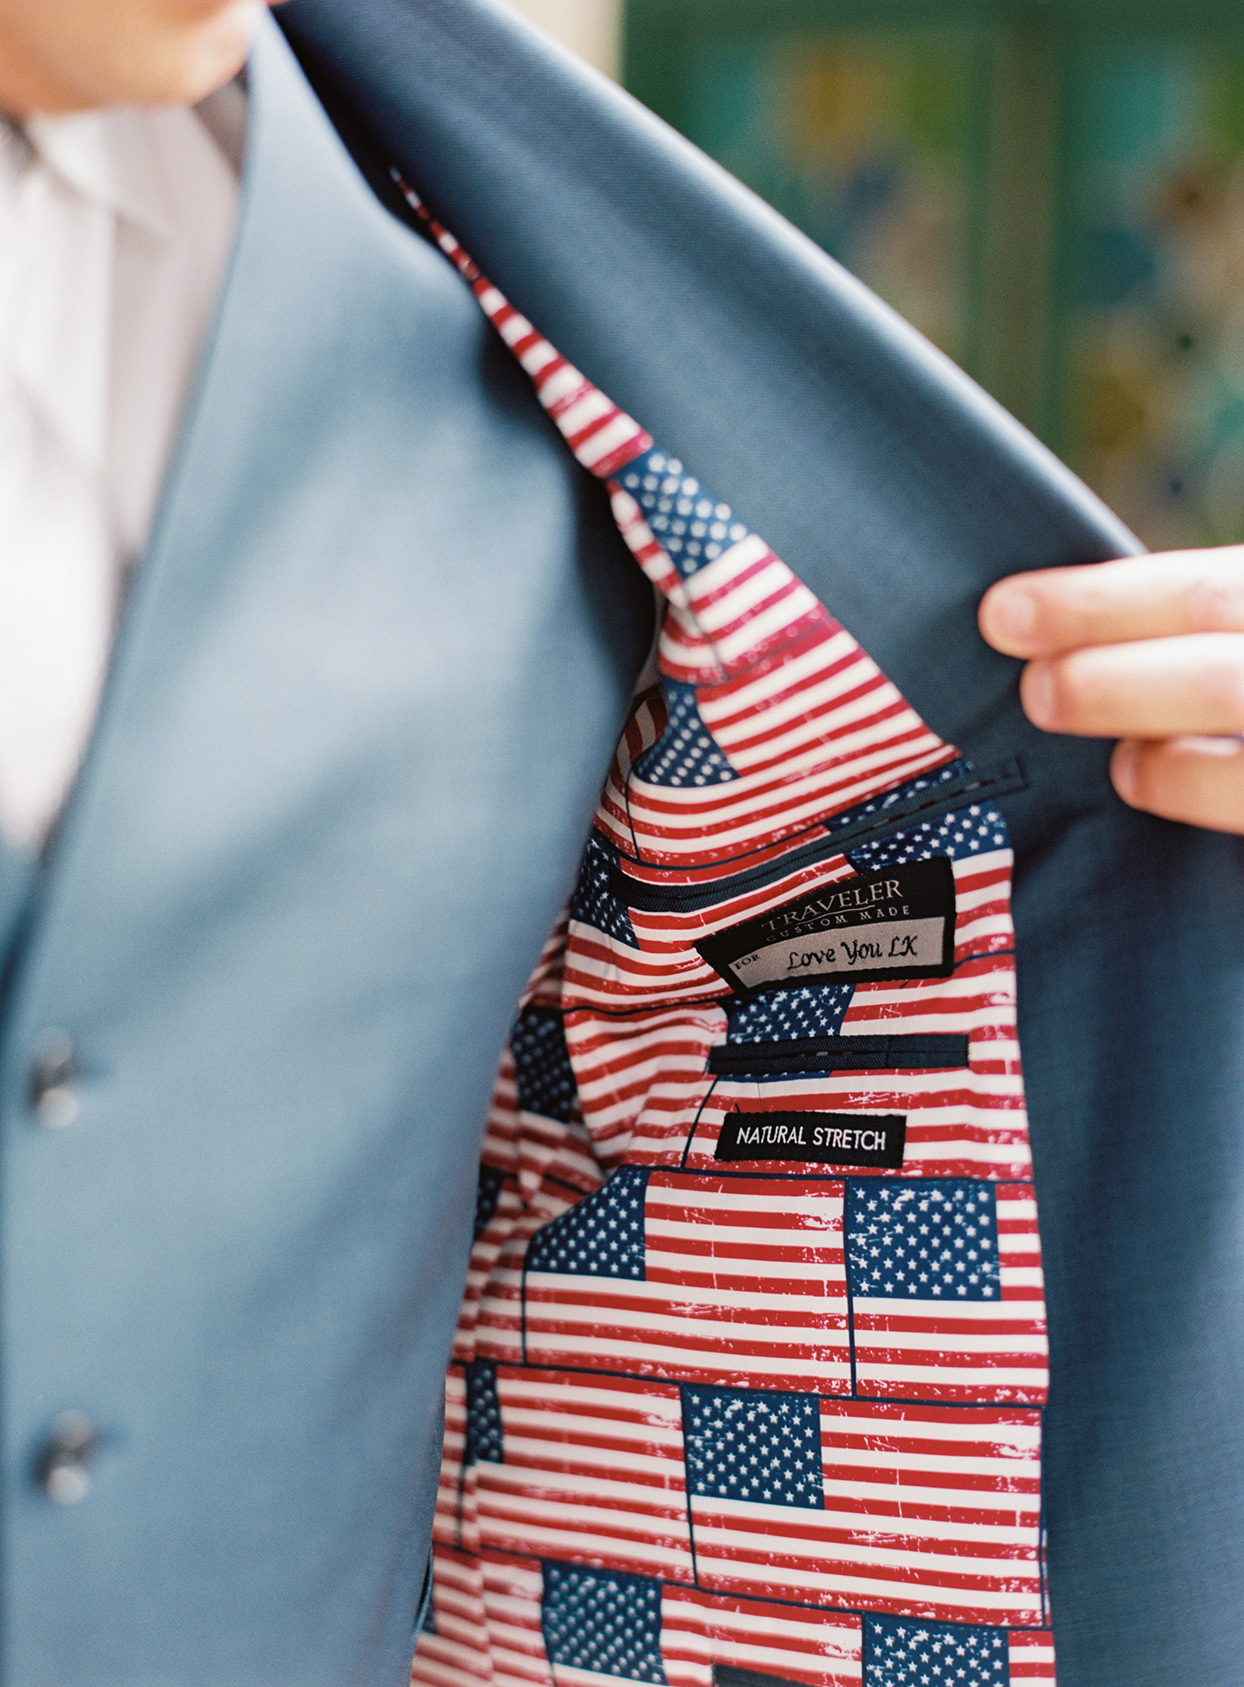 lauren chris wedding groom's american flag suit lining